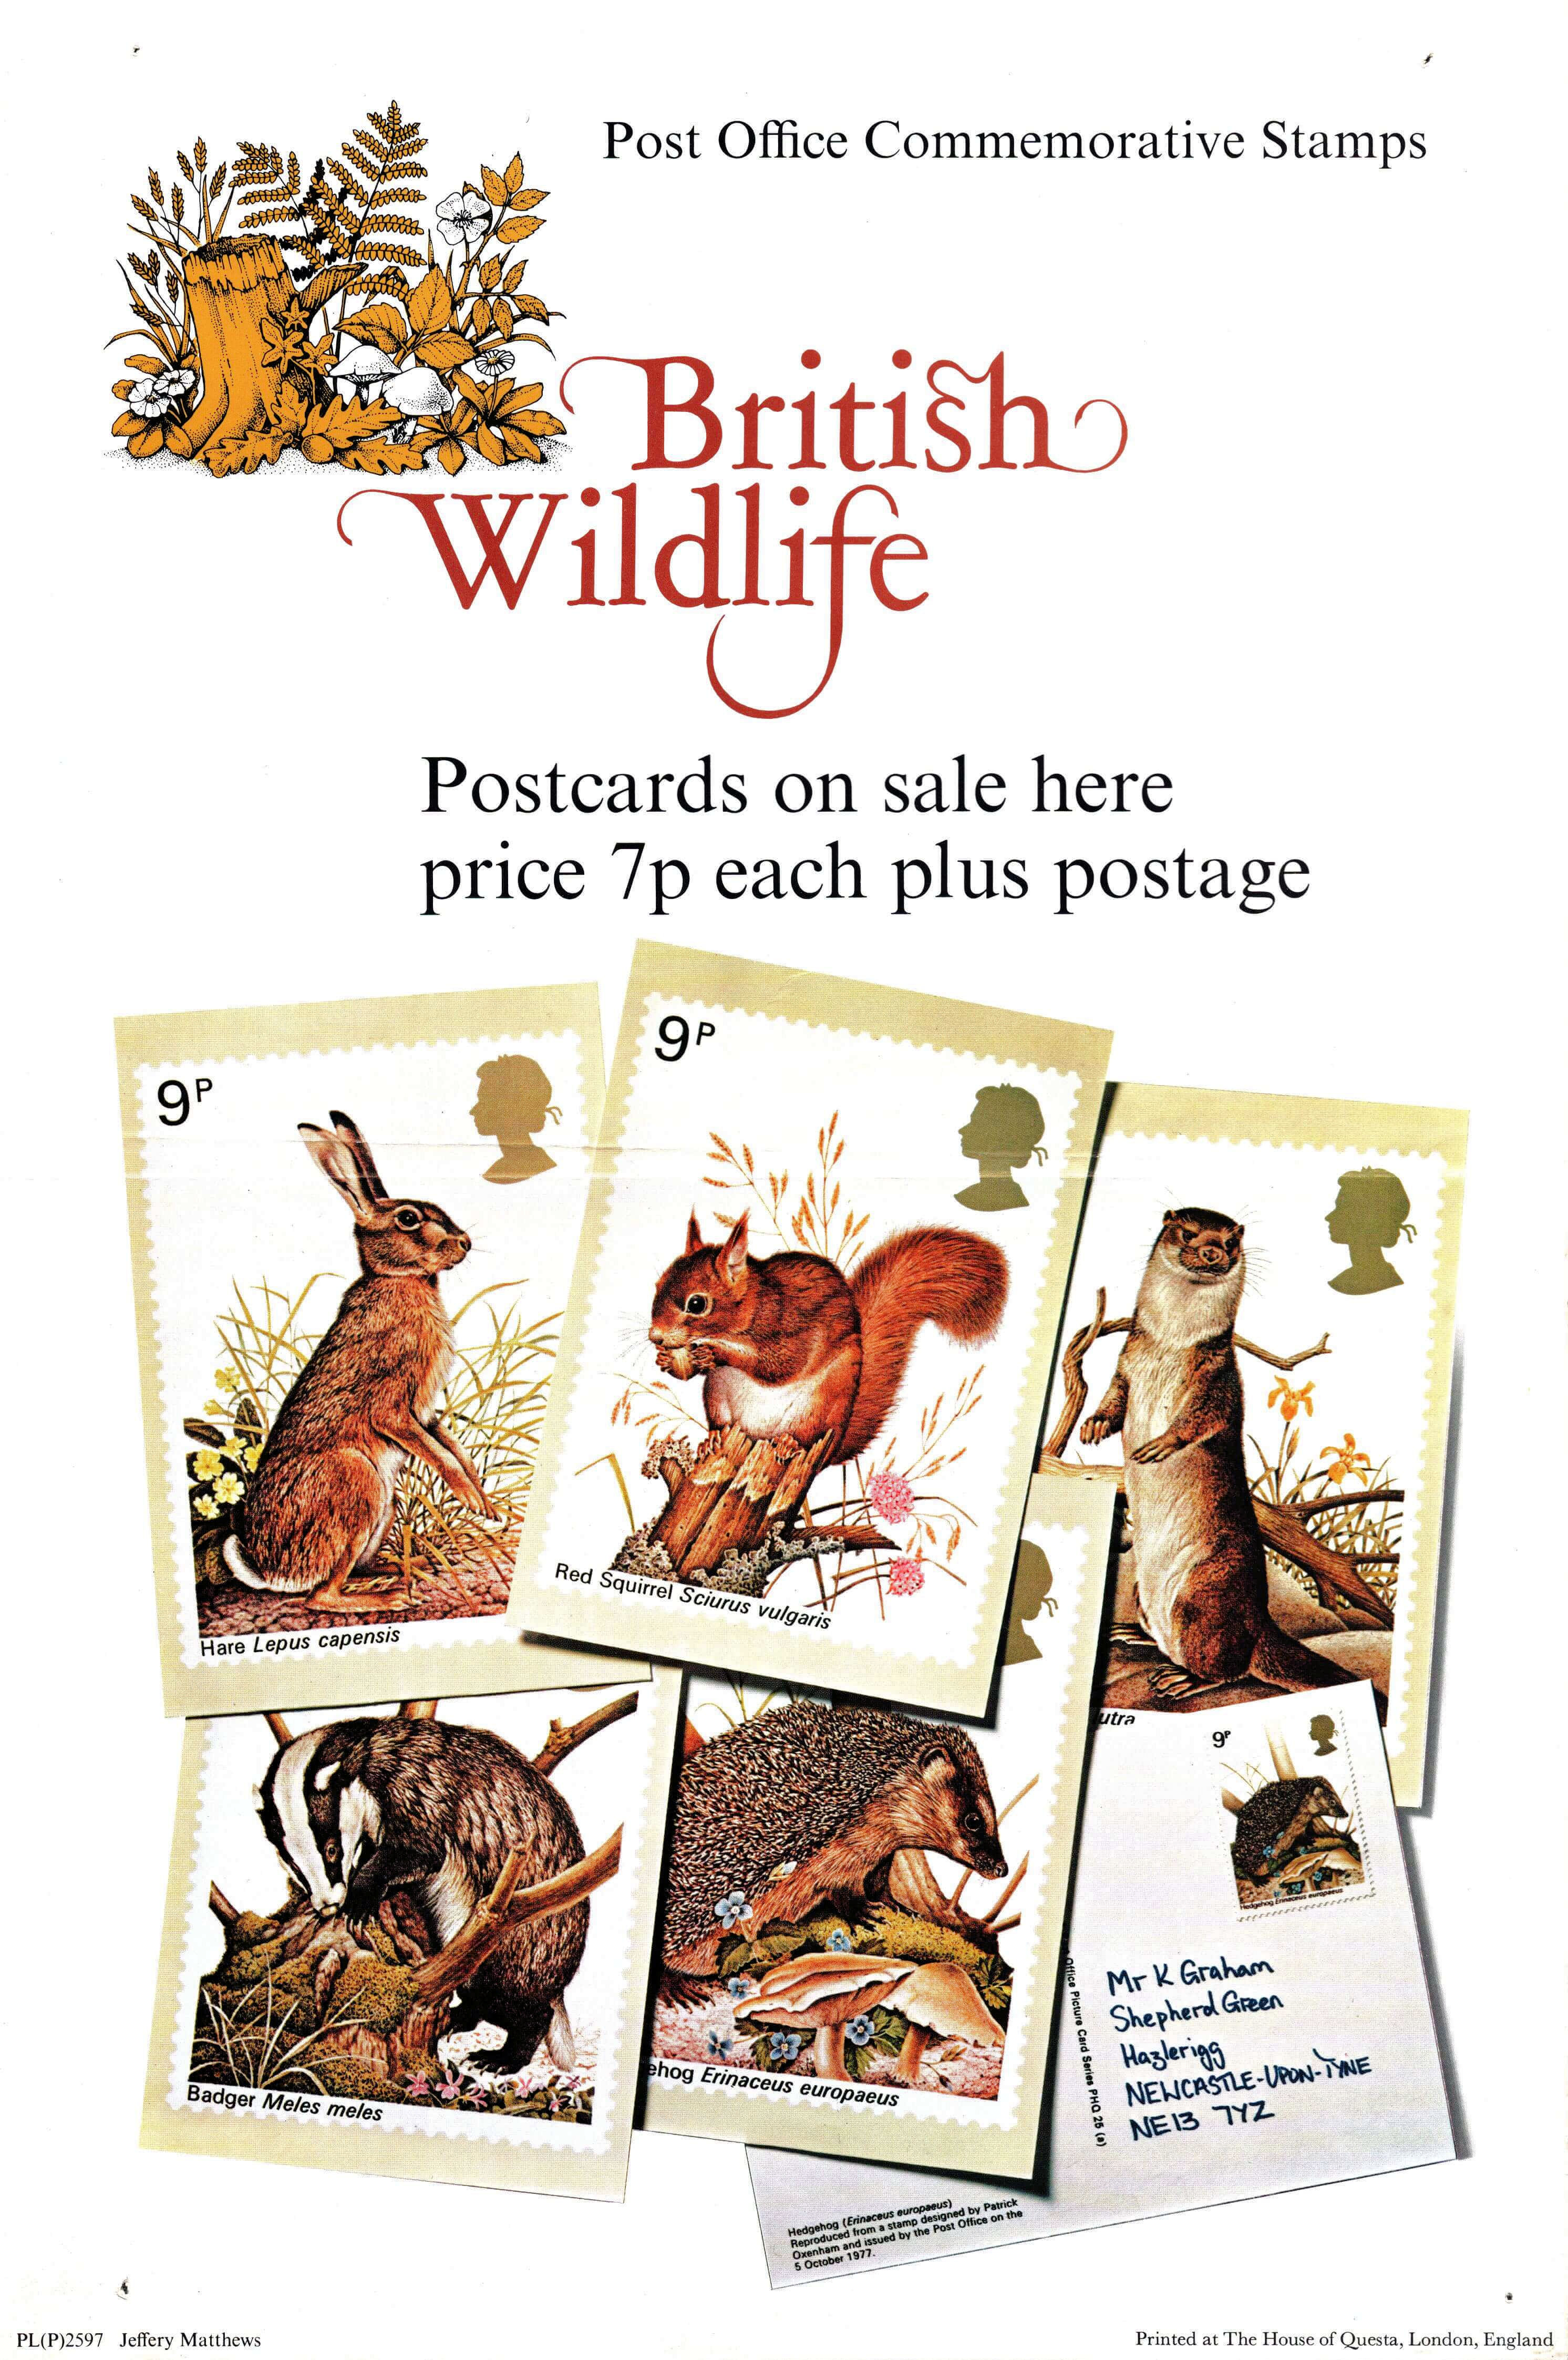 The Queens Beasts (1998) : Collect GB Stamps